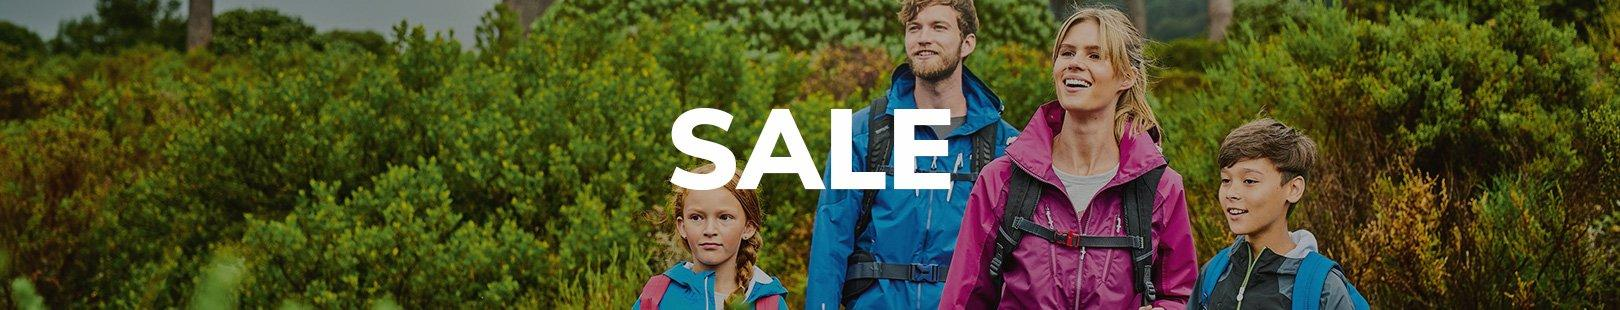 Millets Massive Clearance Sale